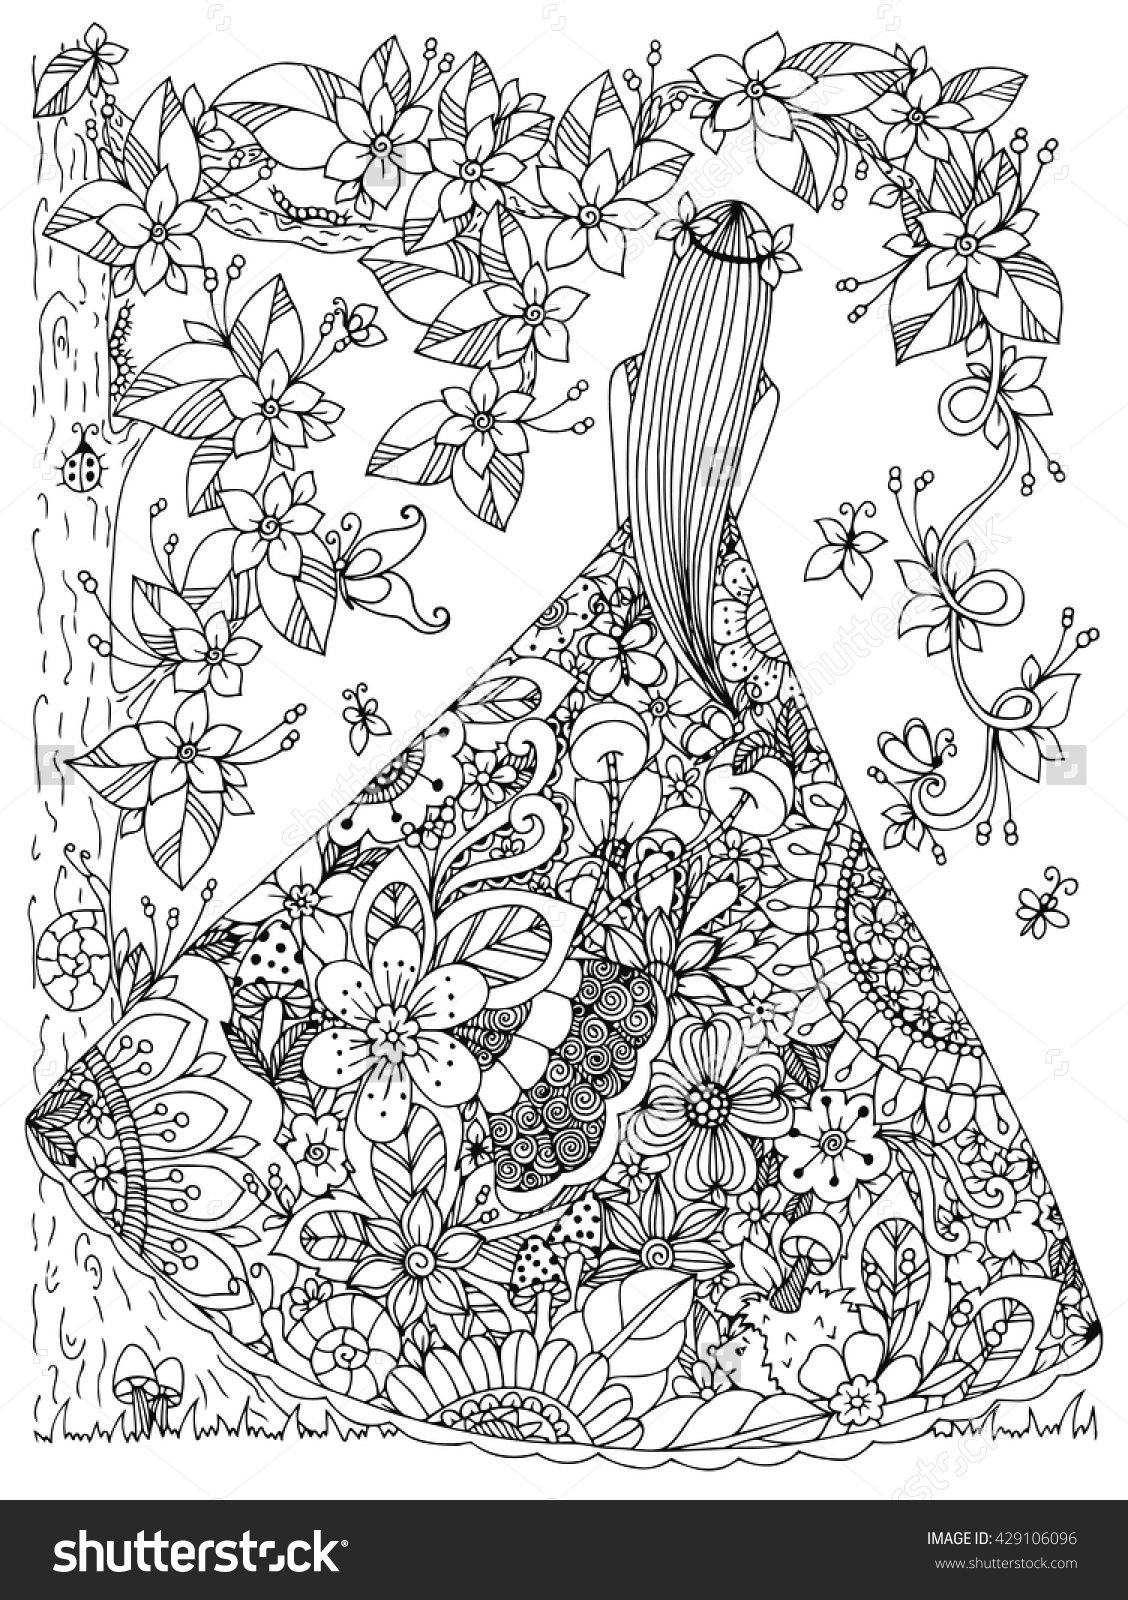 Zen coloring books for adults app - Girl In A Floral Dress Doodle Flowers Tree Zen Coloring Page